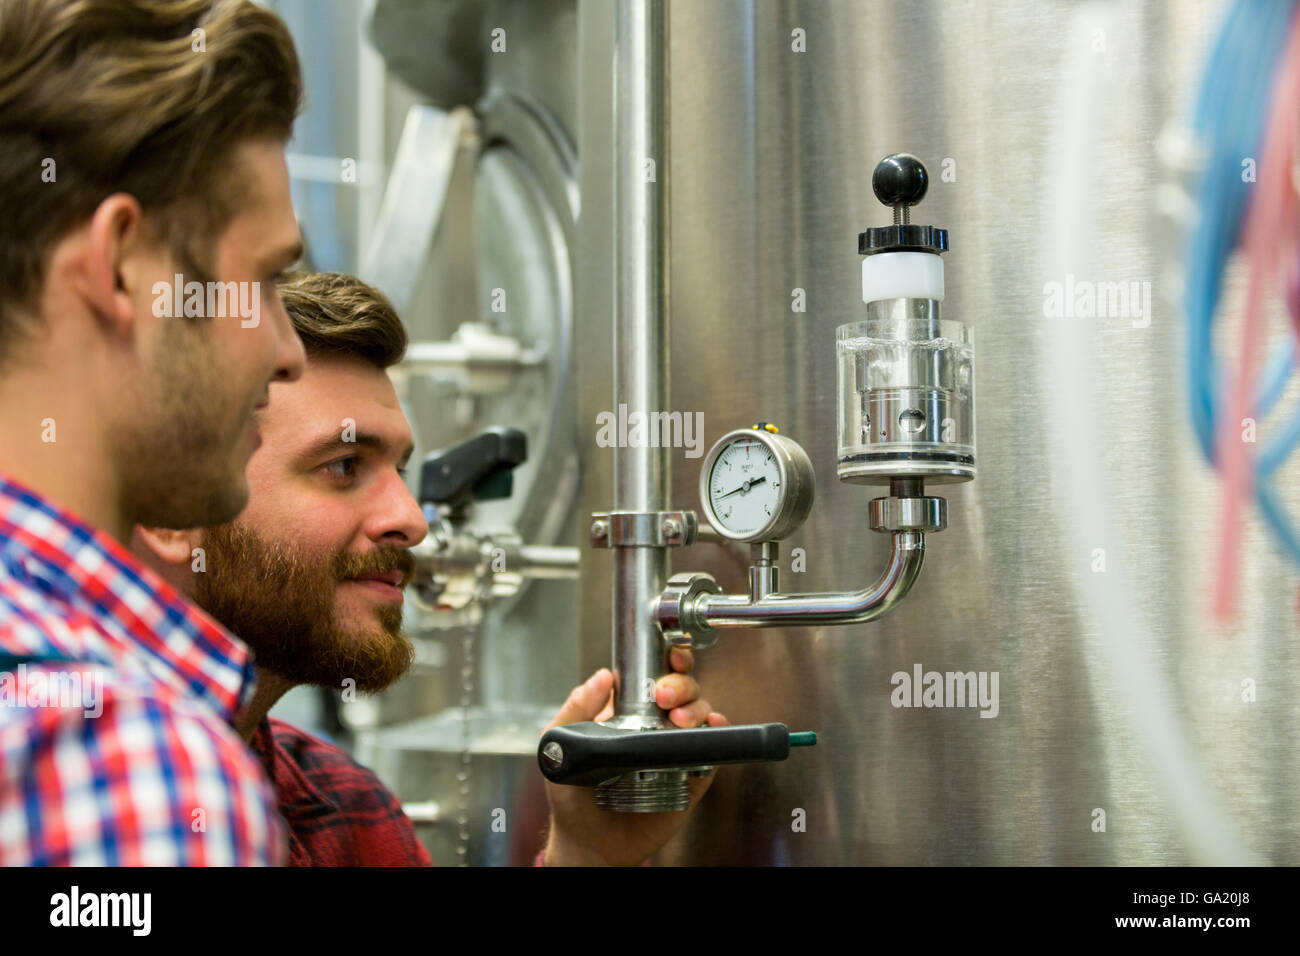 Maintenance workers examining pressure - Stock Image